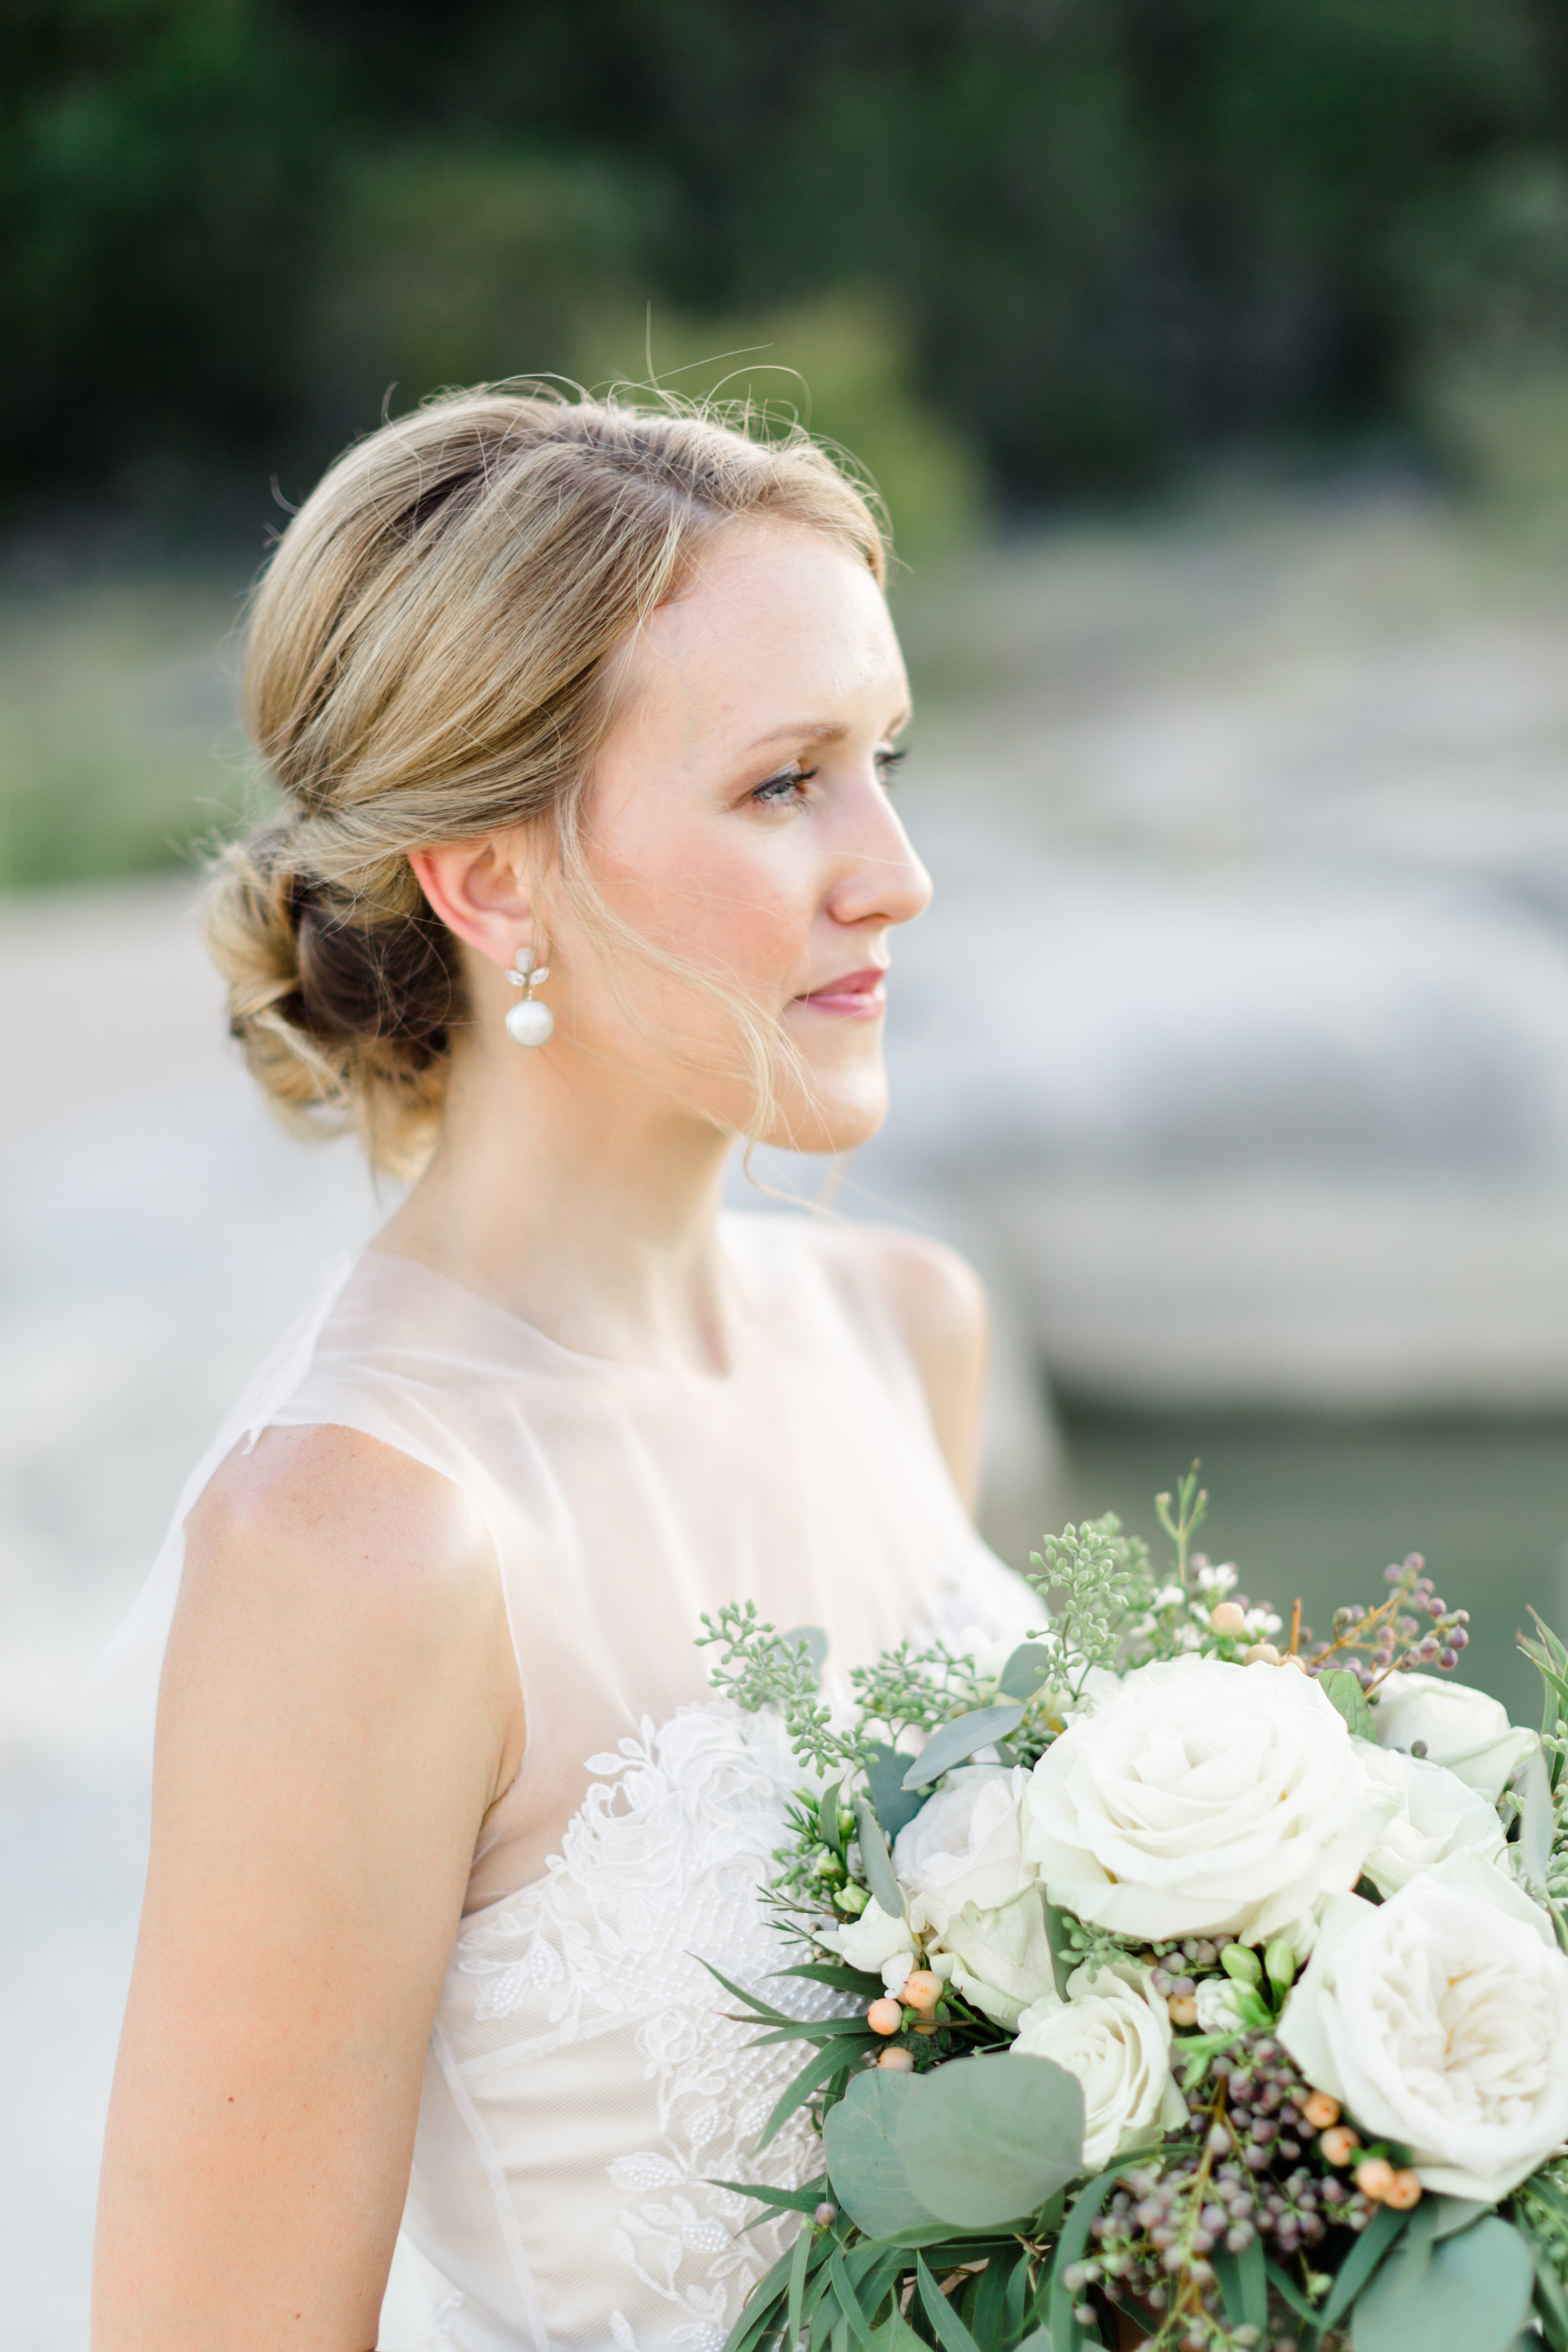 Pedernales Falls Austin Bridal Session. Kayla Snell Photography. Austin wedding Photographer